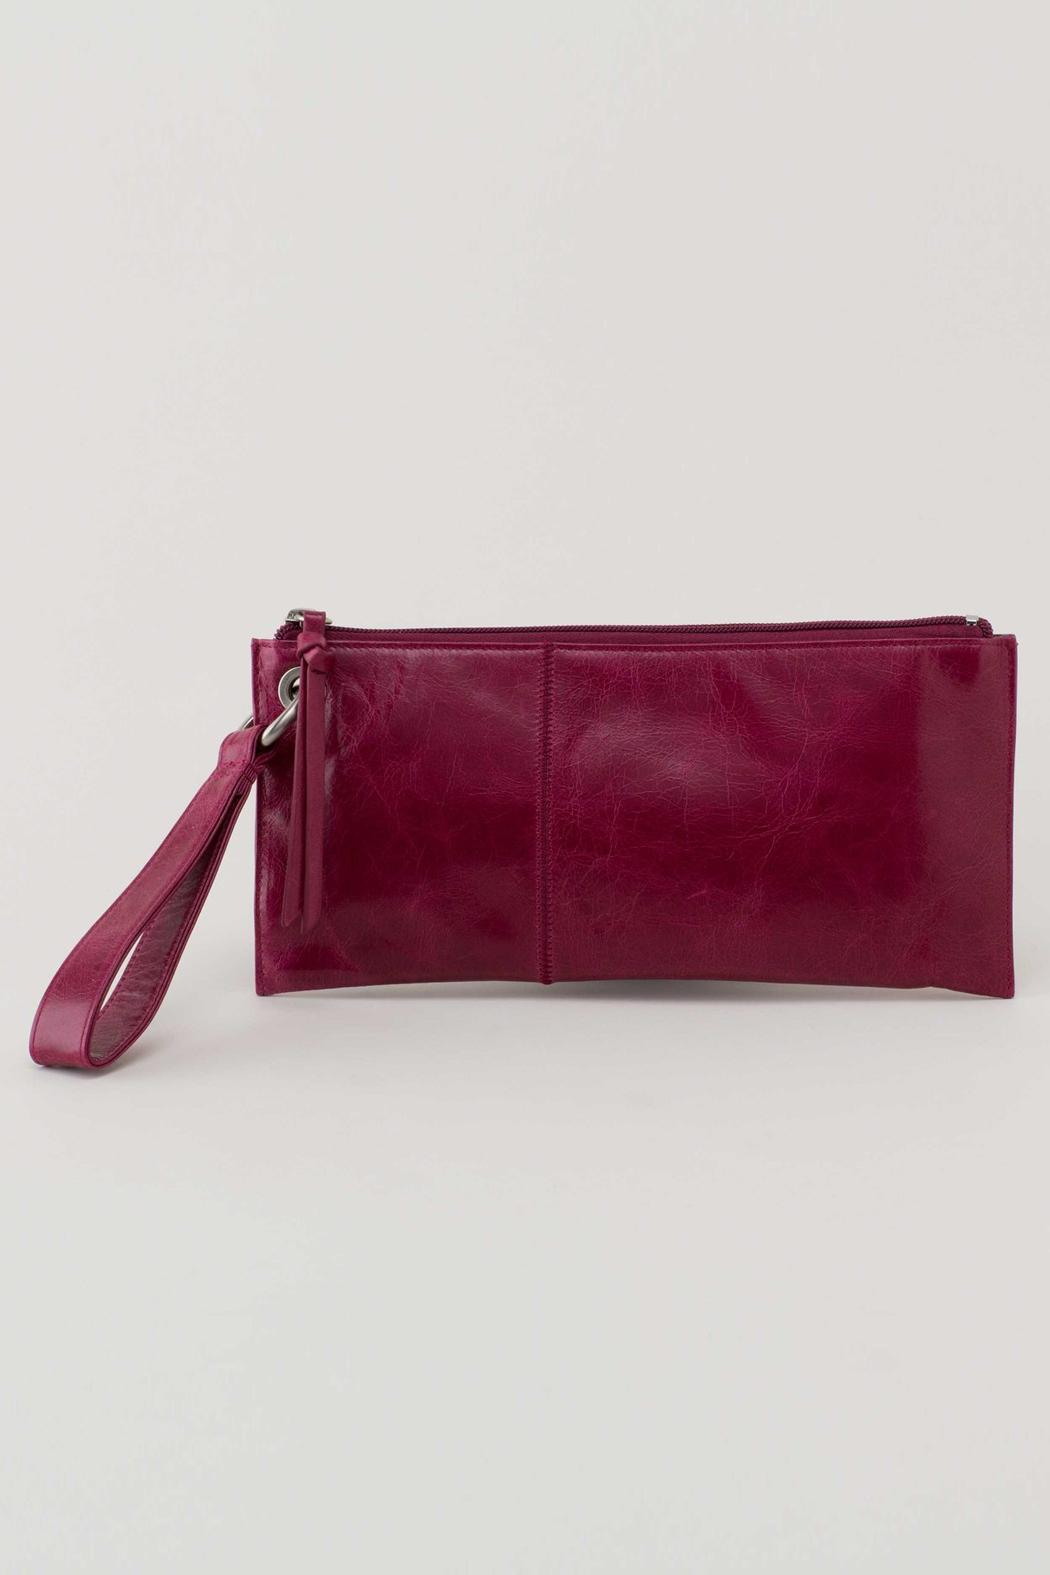 VIDA Statement Bag - purple floral statement by VIDA